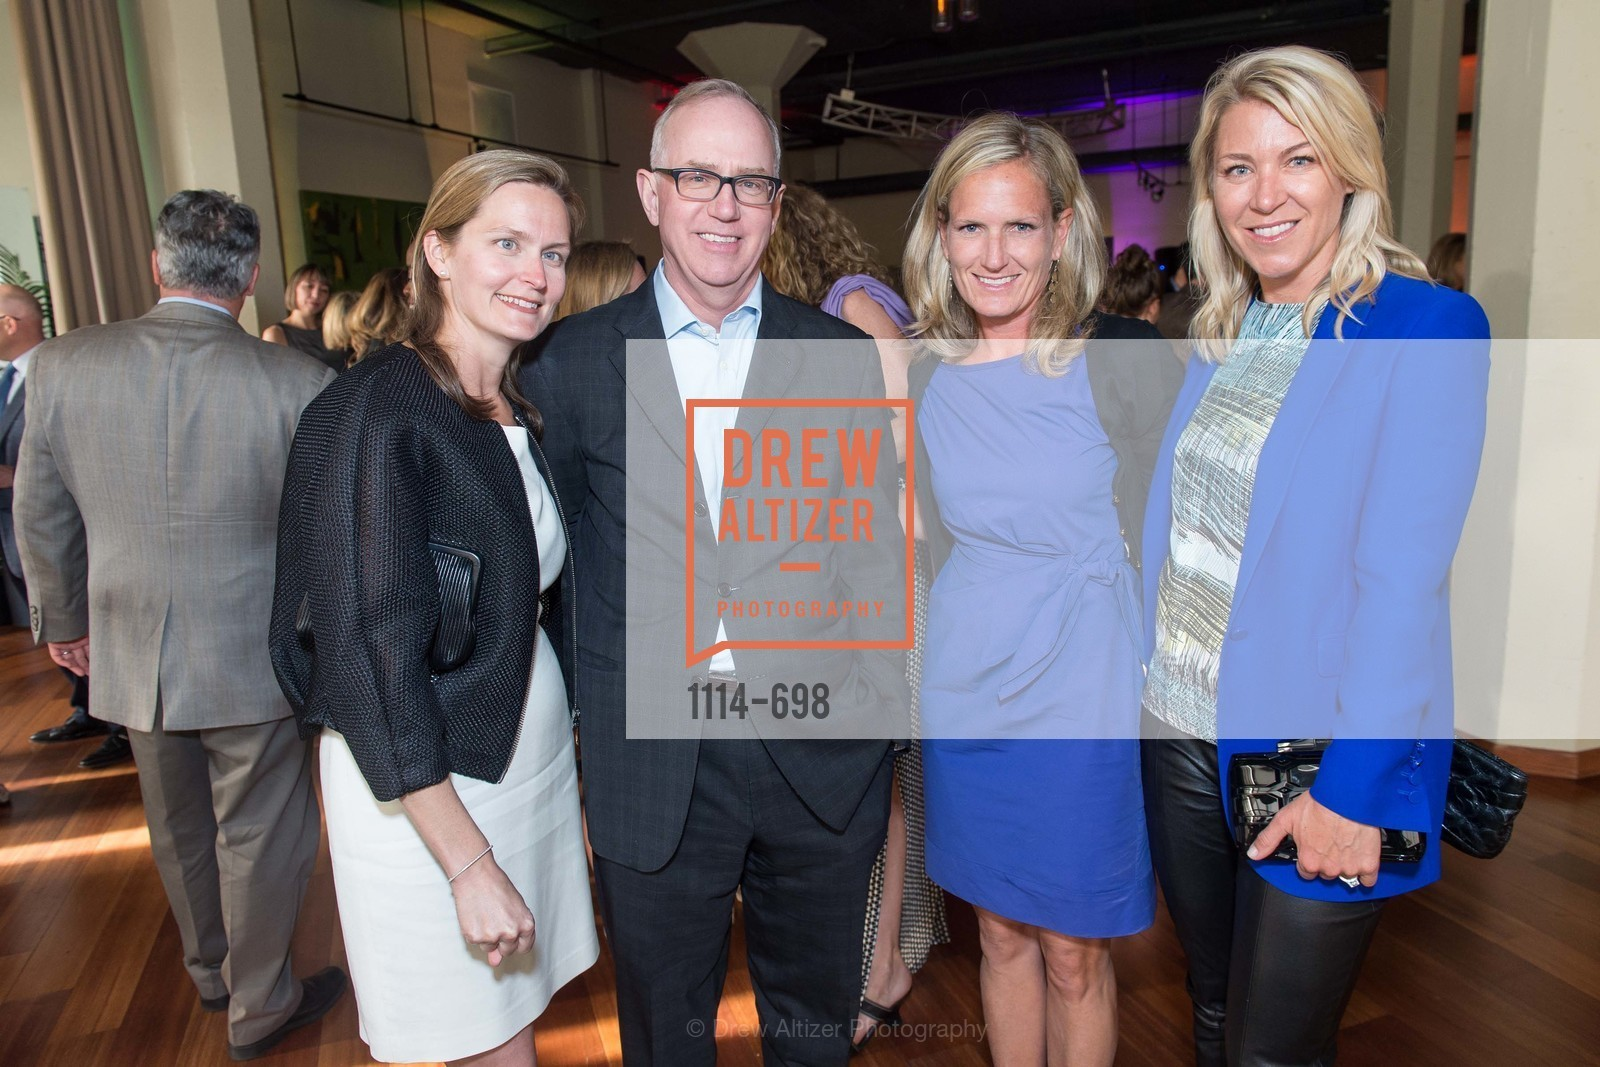 Katelyn Dyson, Brendan Dyson, Janet Bijur, Leslie Olrich, EWG's 6th Annual Earth Dinner, US, May 5th, 2015,Drew Altizer, Drew Altizer Photography, full-service agency, private events, San Francisco photographer, photographer california